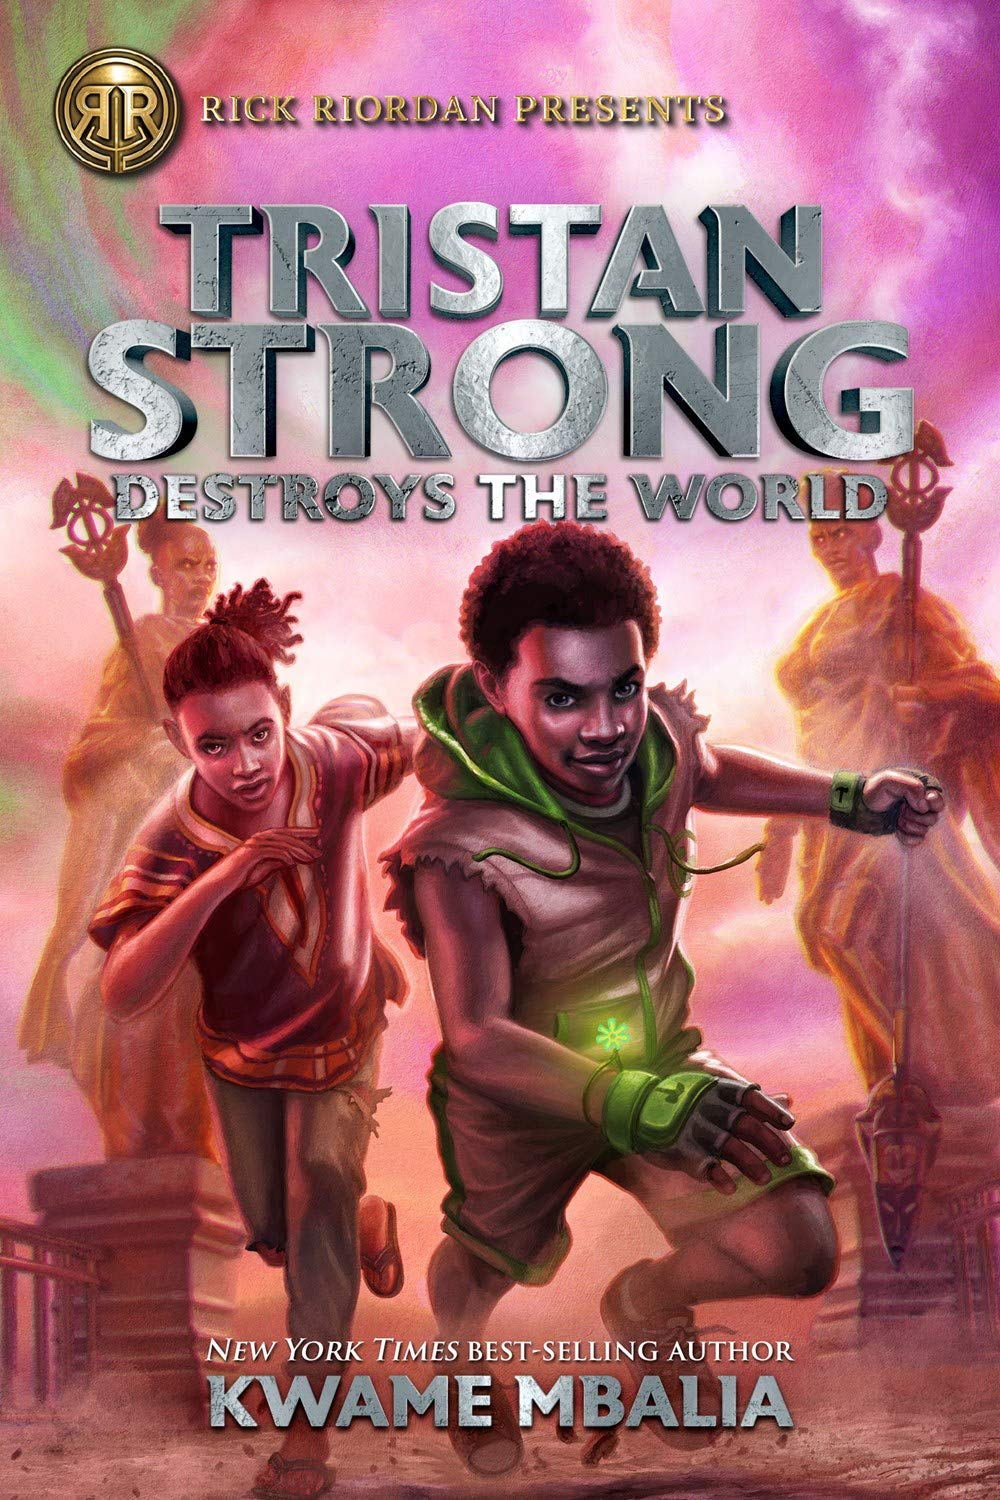 Tristan Strong Destroys the World (A Tristan Strong Novel, Book 2) (Tristan  Strong, 2): Mbalia, Kwame: 9781368042383: Amazon.com: Books